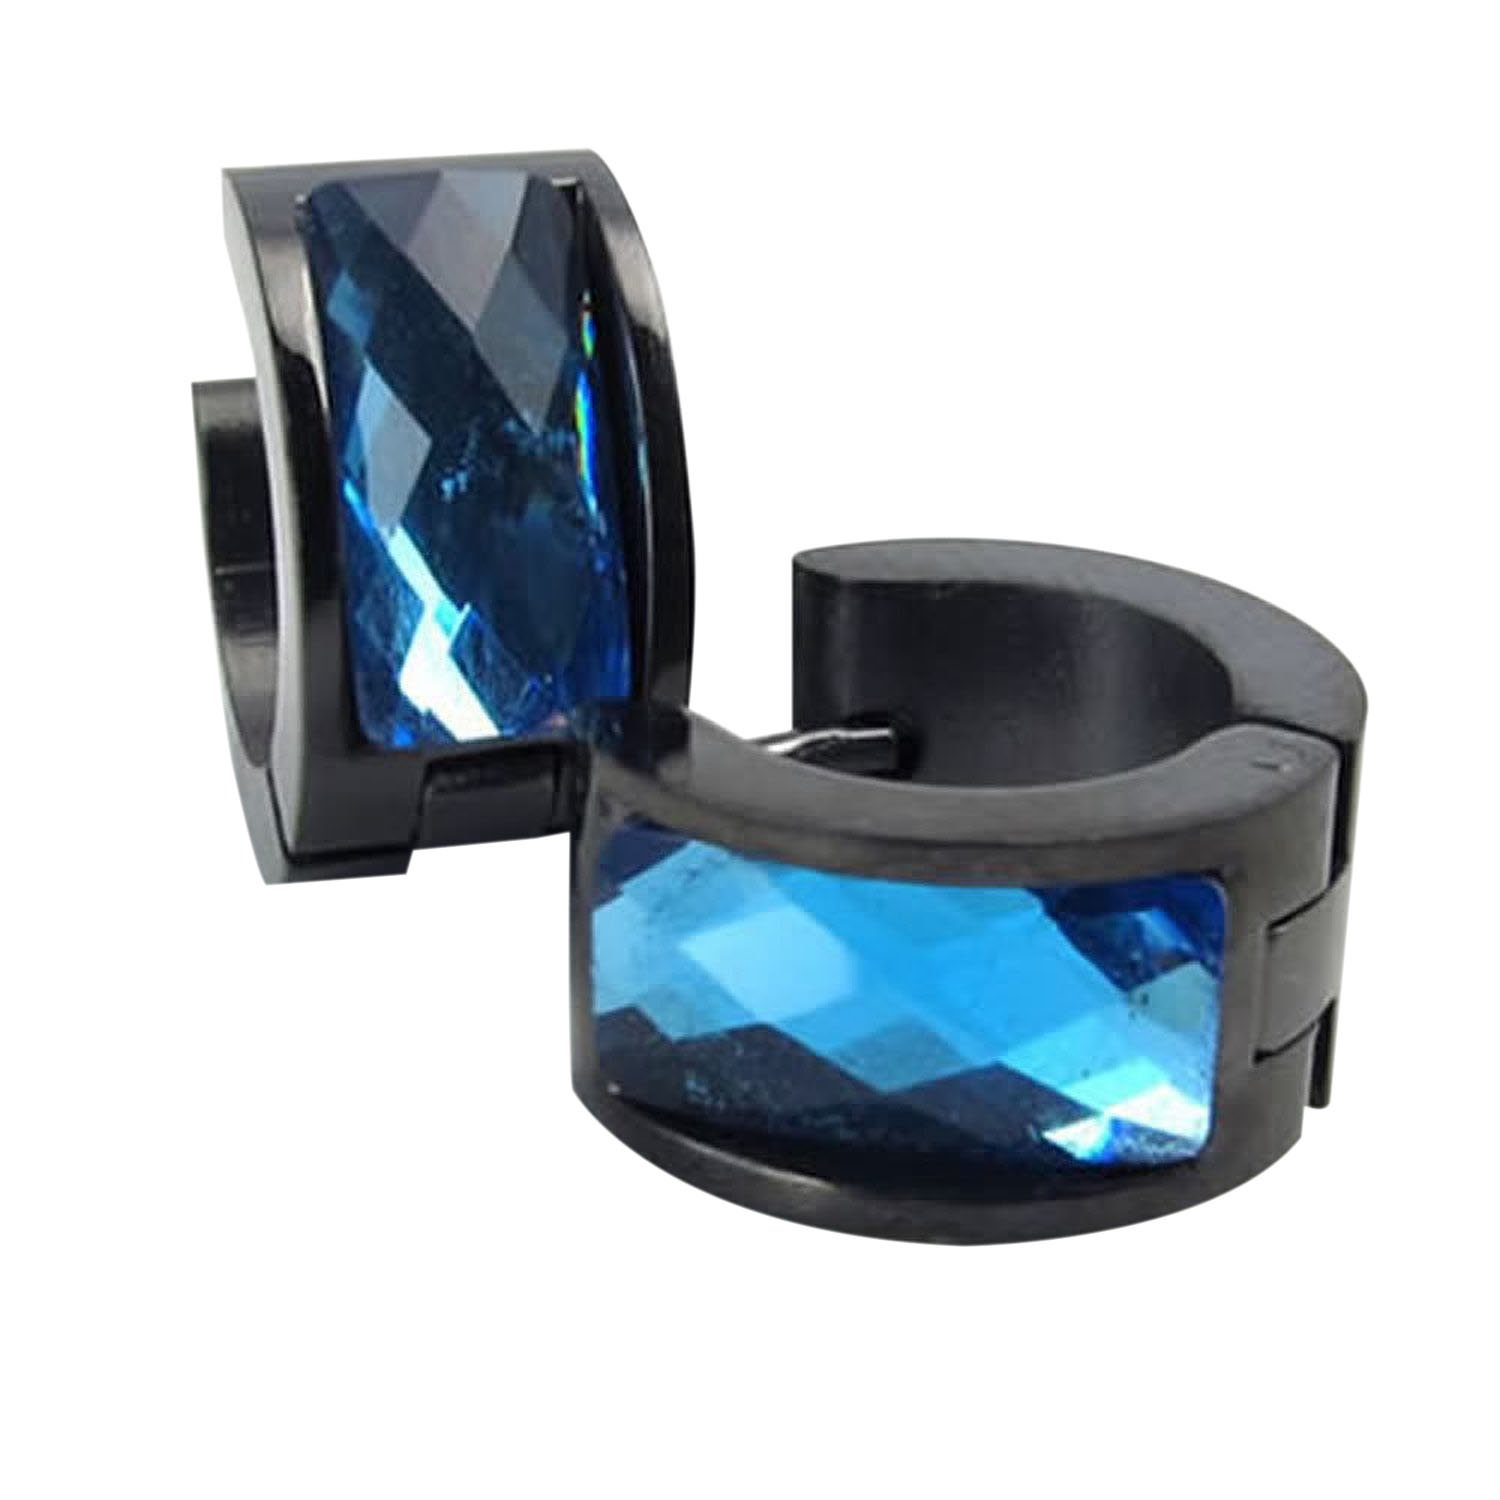 SODIAL(R) Velvet Bag Jewelry Men's Earrings, Stainless Hoop Earring Stud, Blue Black